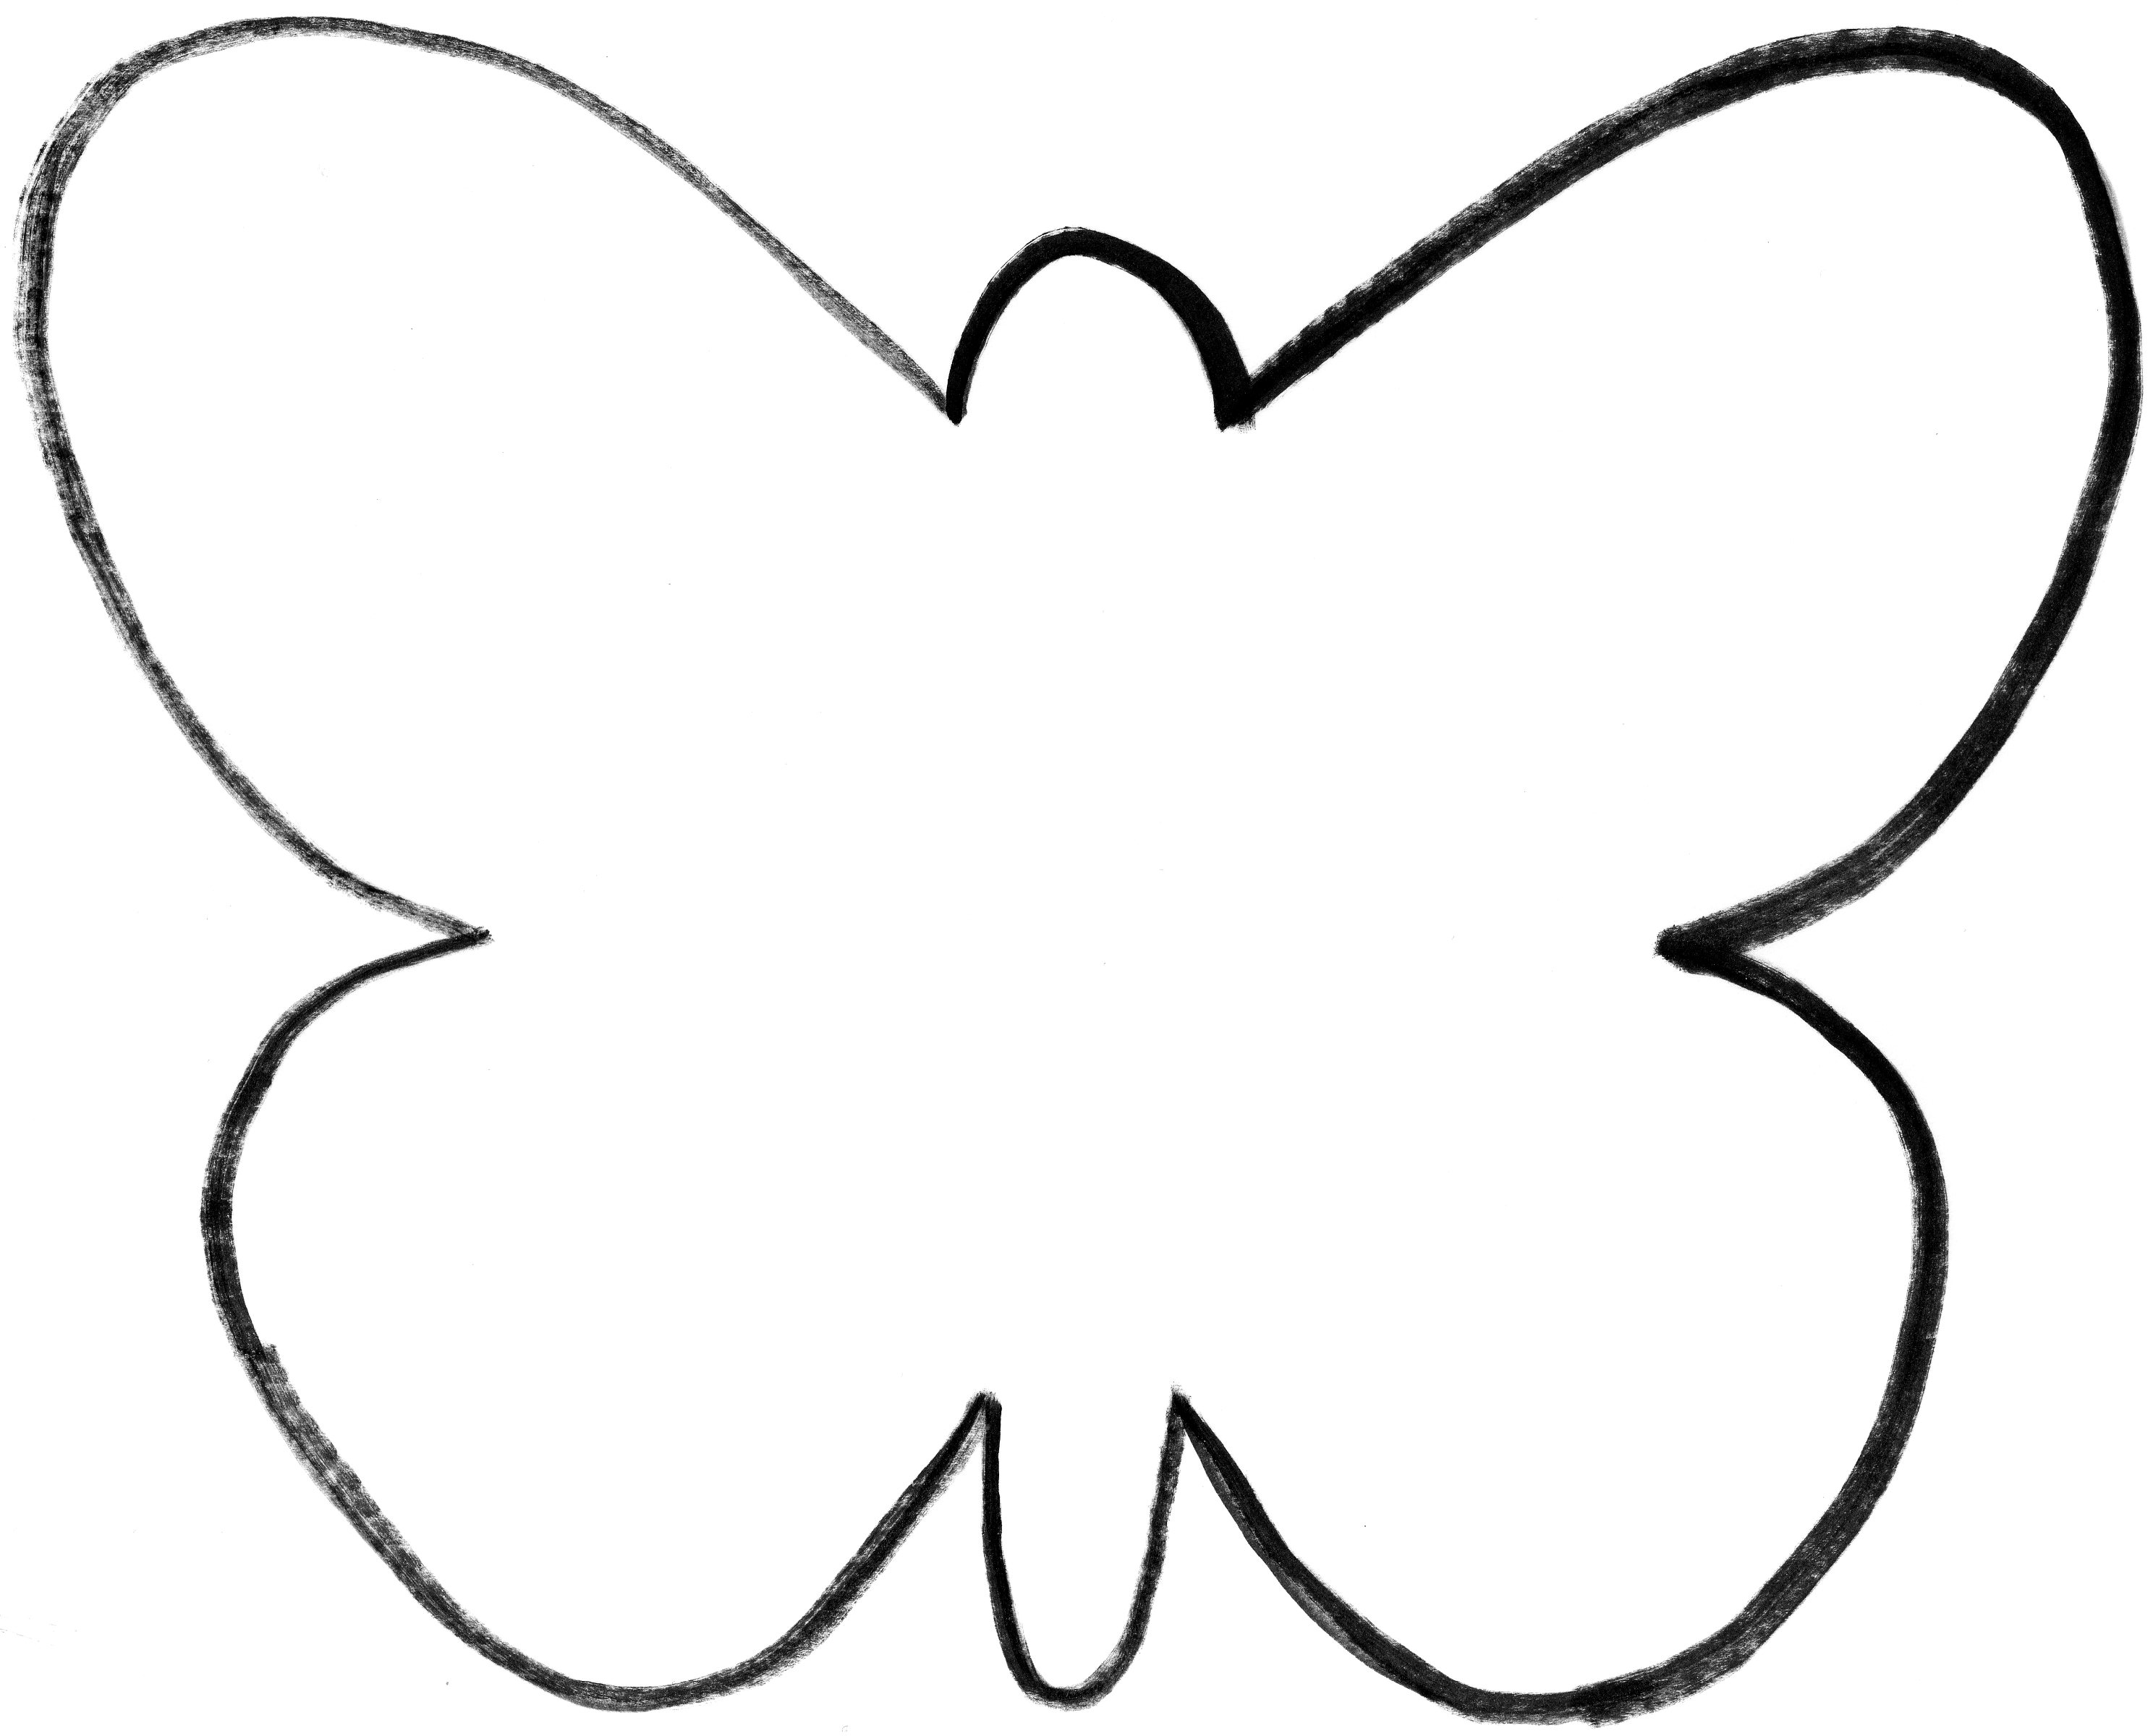 Butterfly stencil clipart black and white.